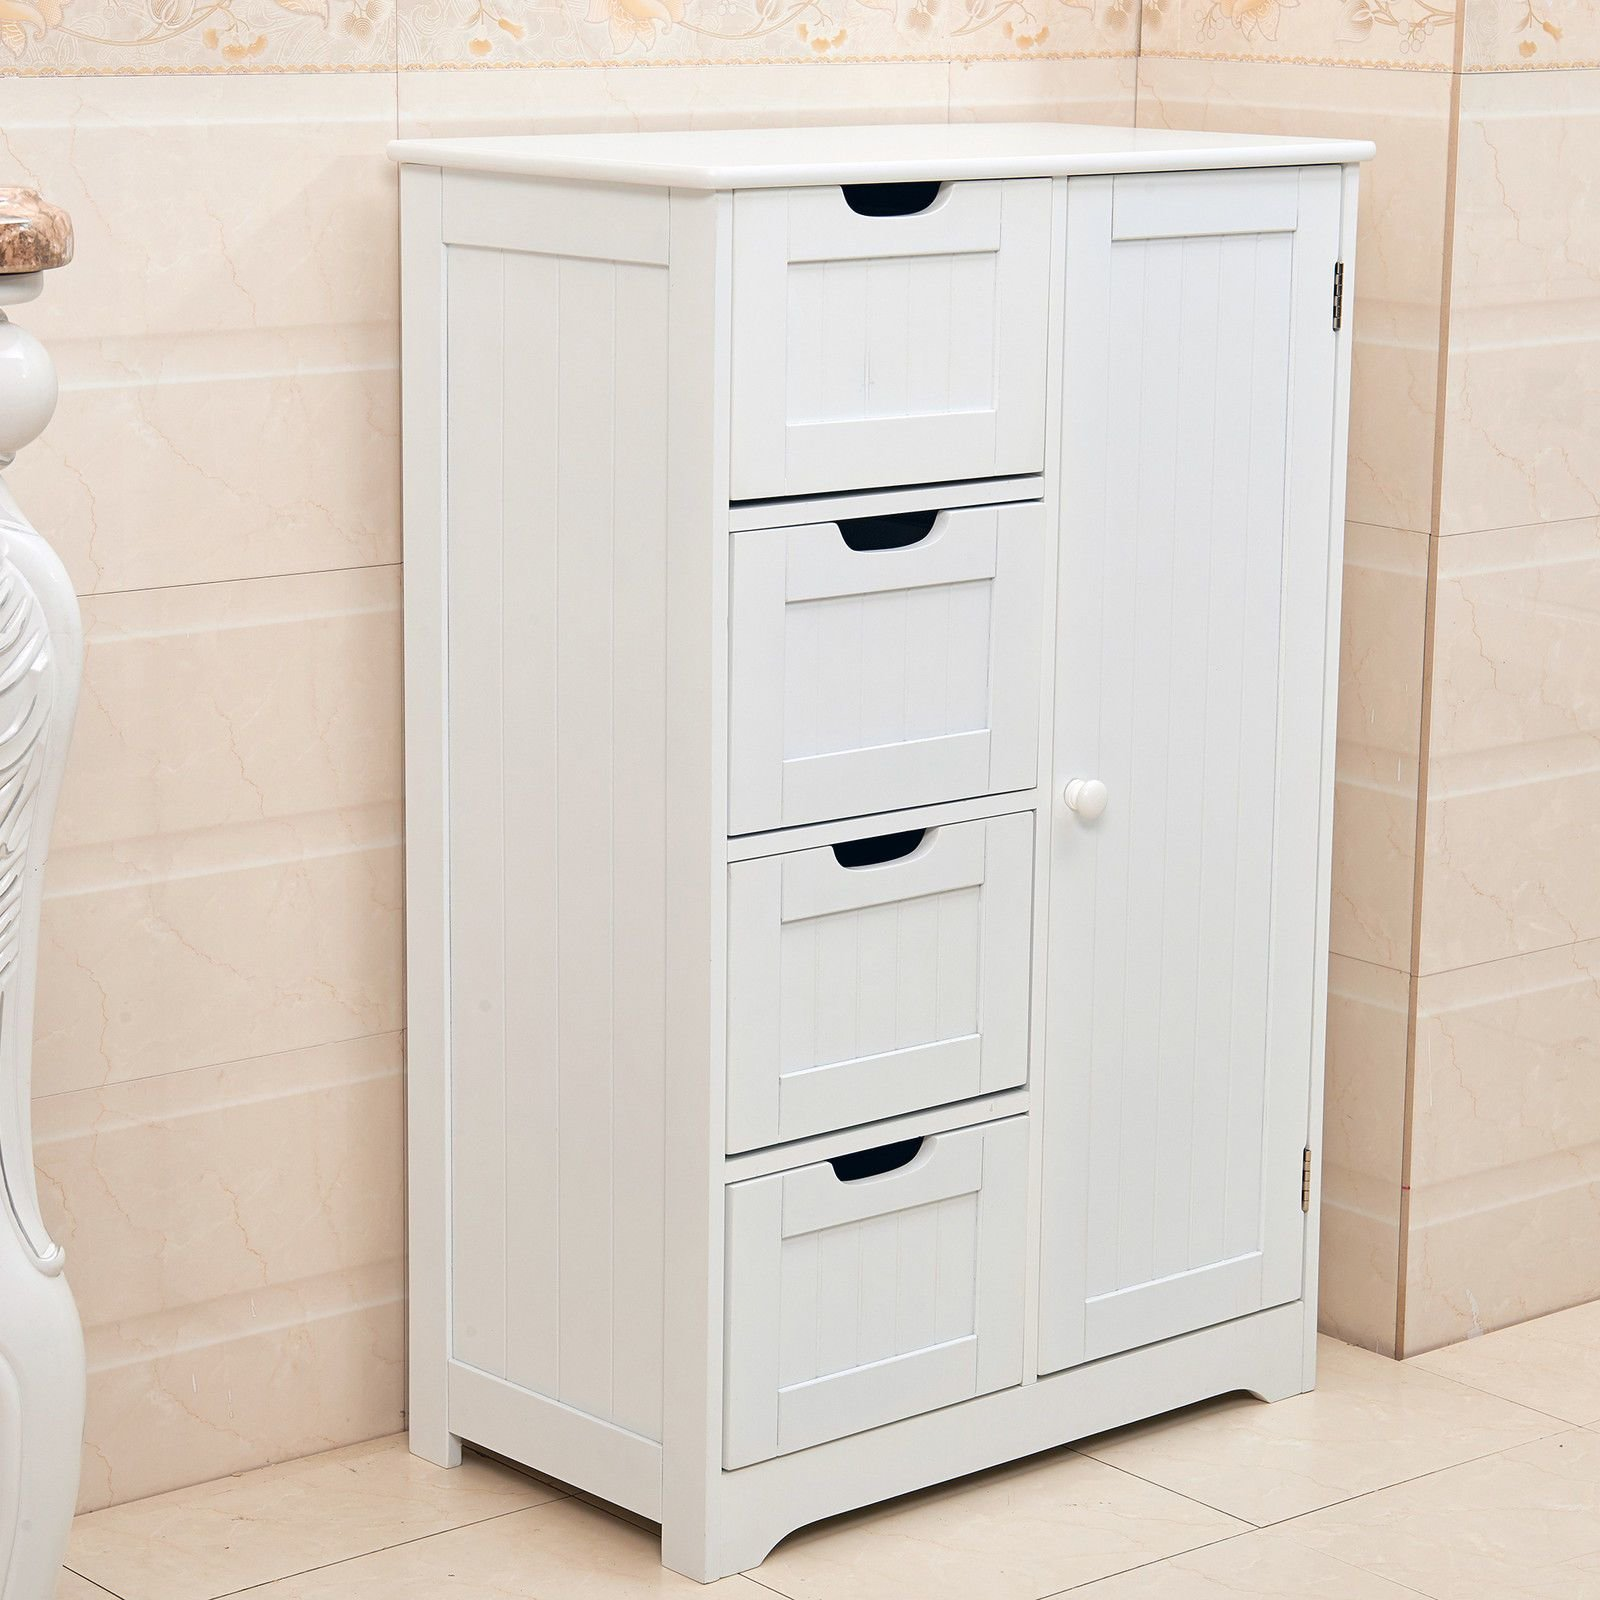 Best New White Wooden Cabinet With 4 Drawers Cupboard Storage Bathroom Or Bedroom Ebay With Pictures